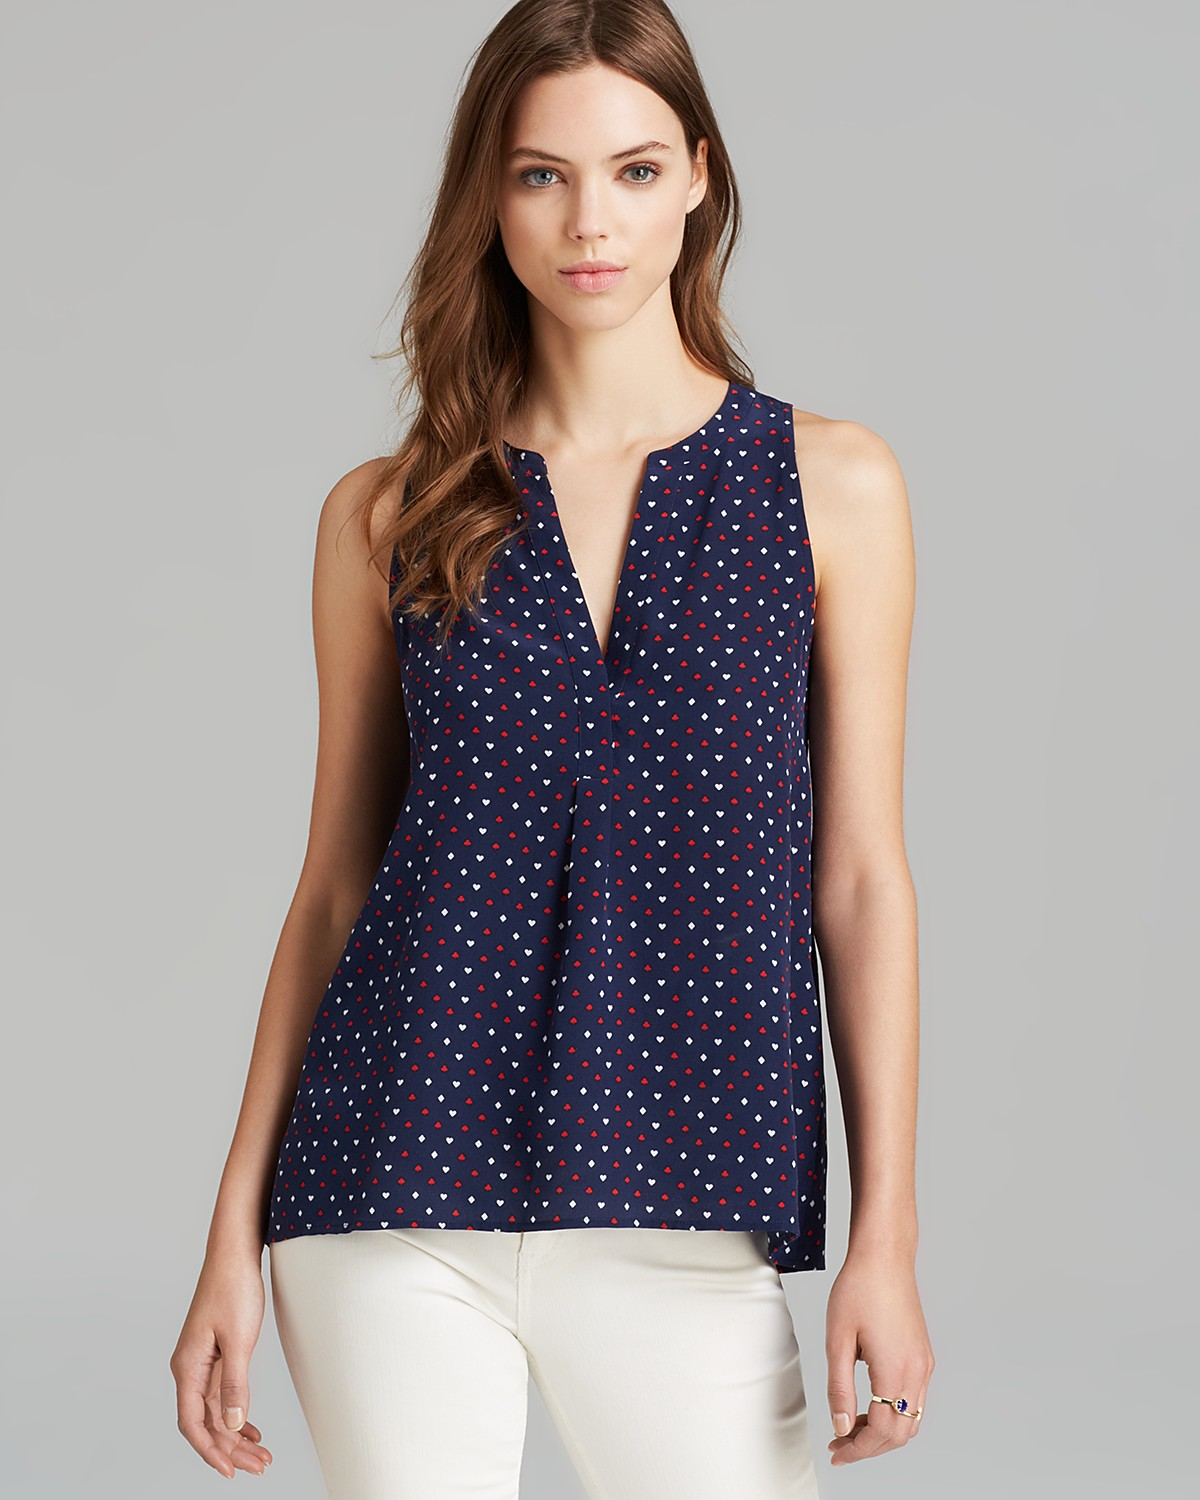 Joie Tank - Aruna Playing Cards Print | Bloomingdale's